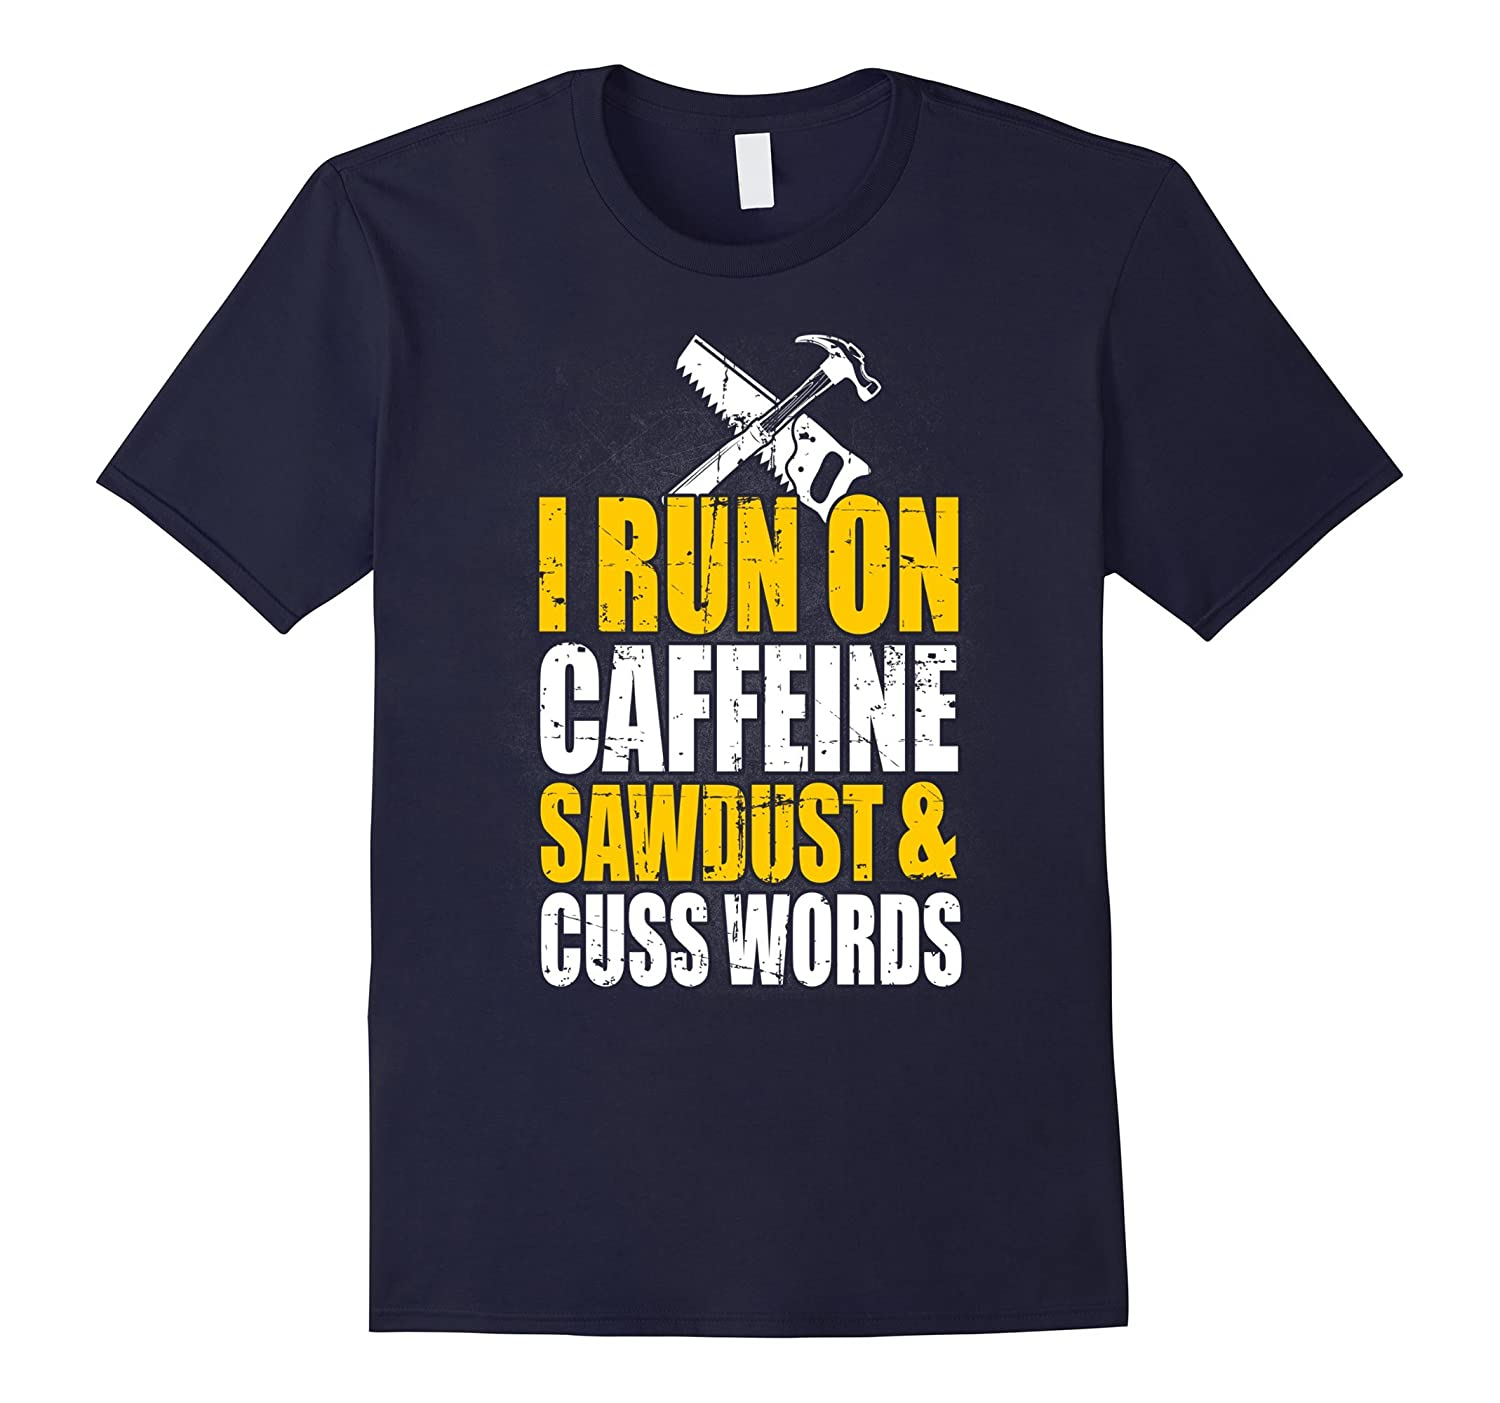 Carpenter t shirt - I RUN ON CAFFEINE SAWDUST  CUSSWORDS-TD